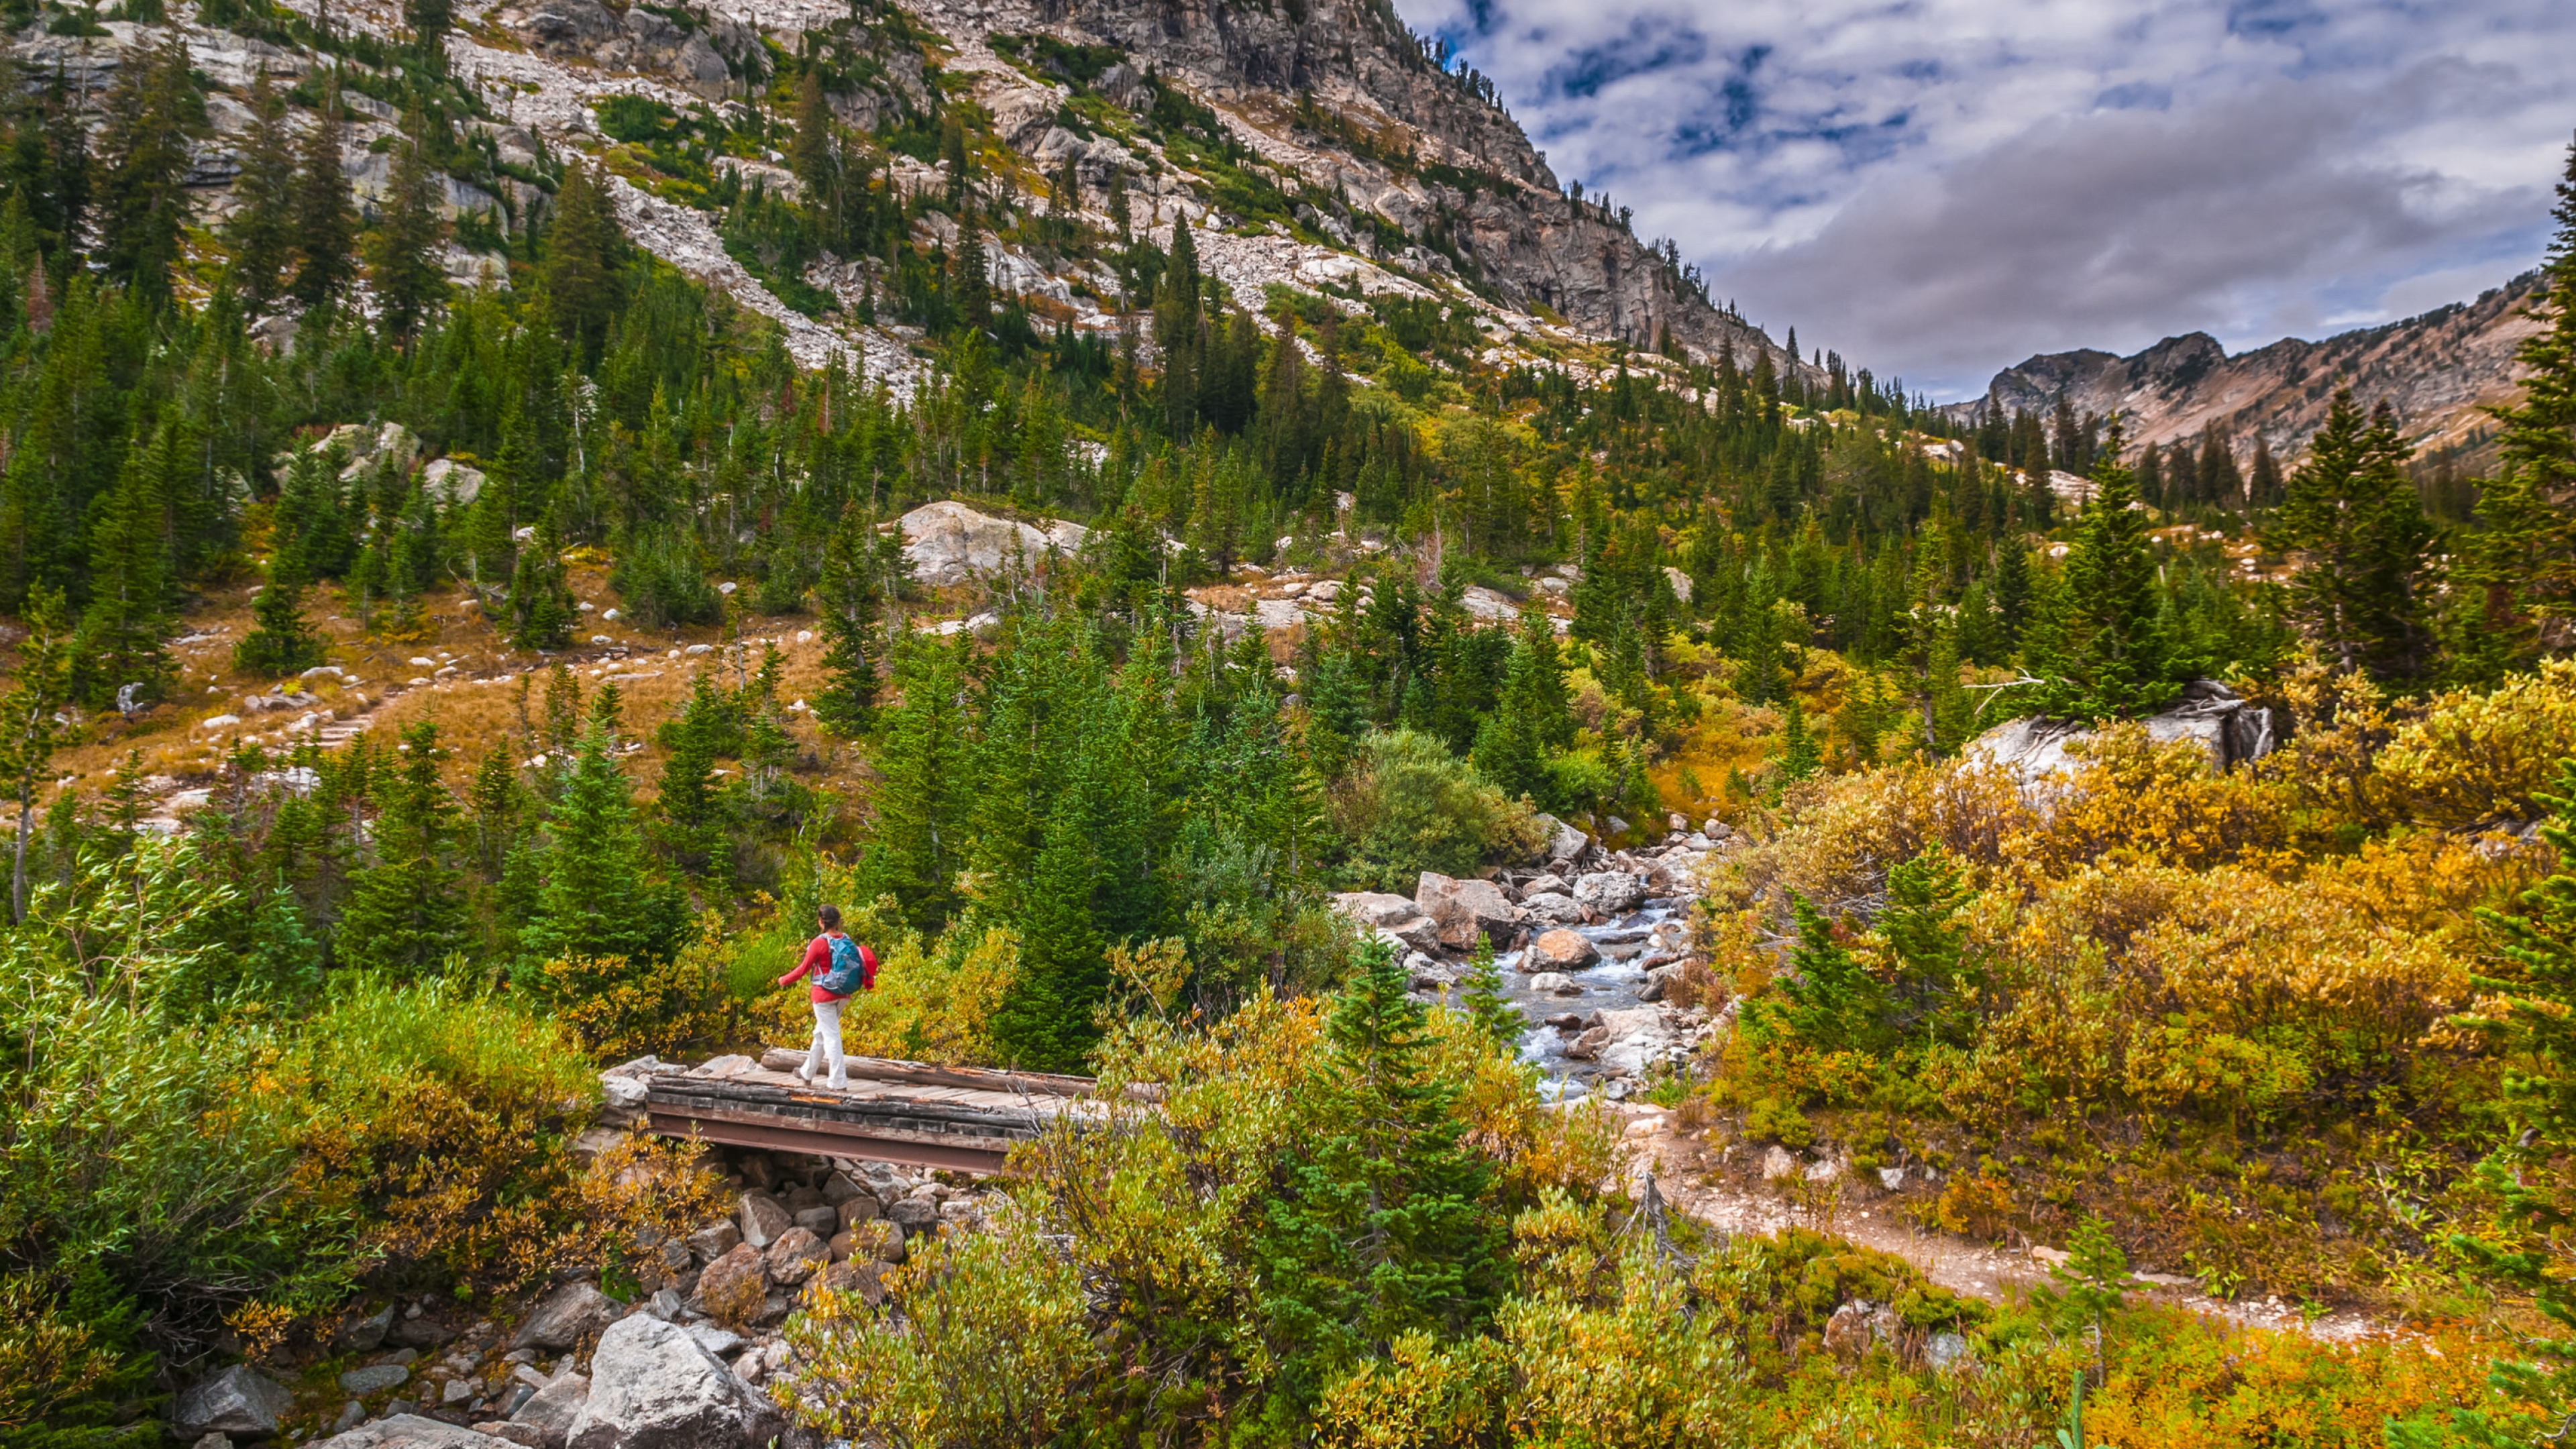 A person walking on a bridge over a river amongst the green and yellow trees in a valley at Grand Teton National Park